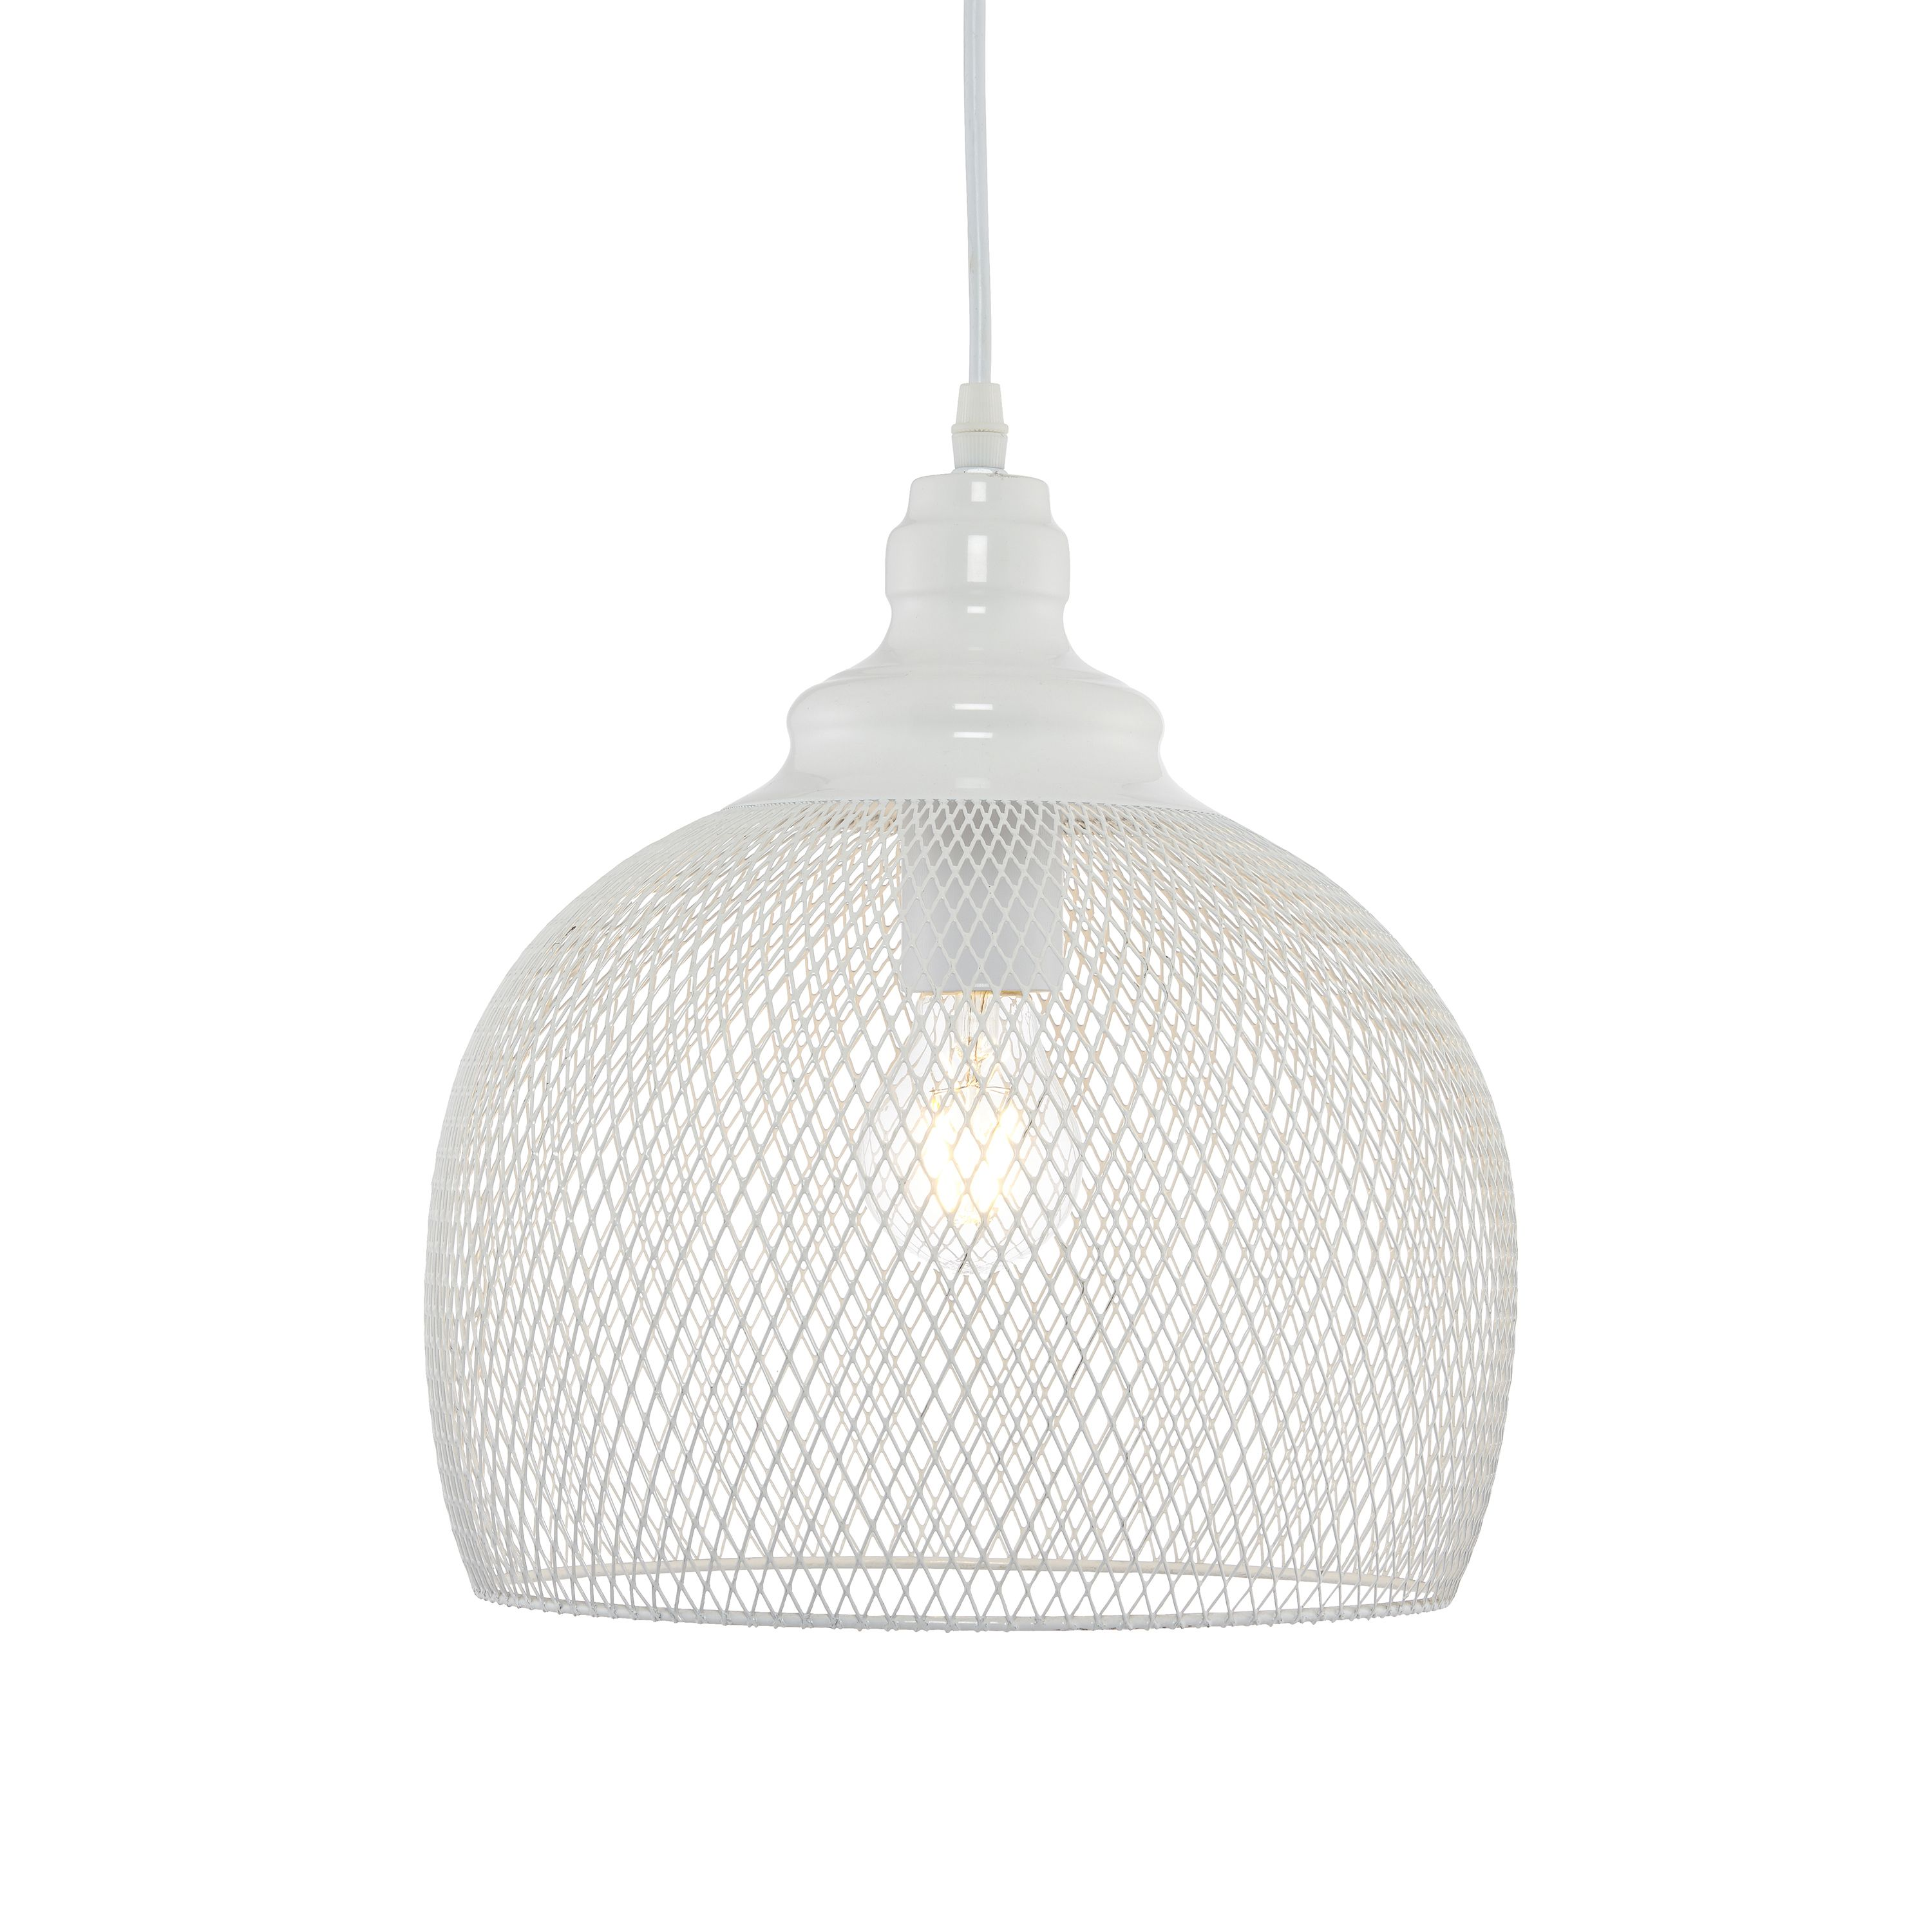 Solent Cage White Pendant Ceiling Light Departments  : 501483864699102c from www.diy.com size 3000 x 3000 jpeg 489kB